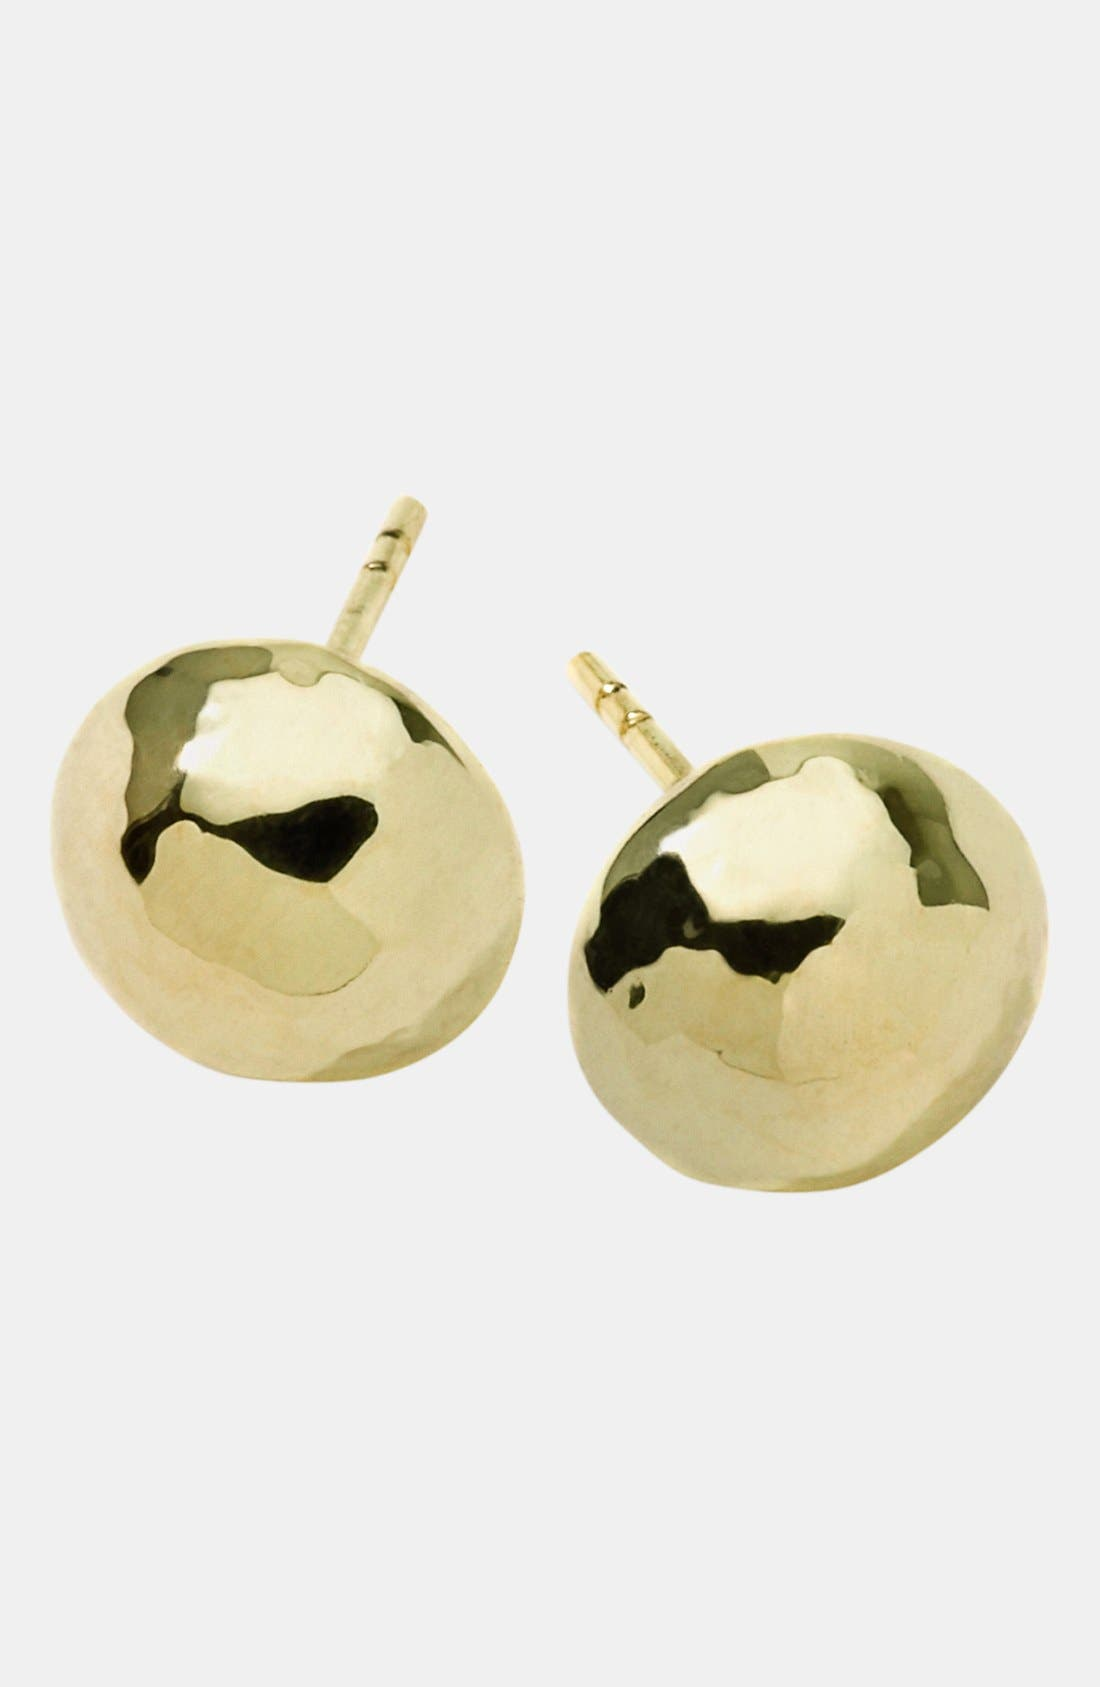 'Glamazon' 18k Gold Hammered Ball Earrings,                             Main thumbnail 1, color,                             YELLOW GOLD